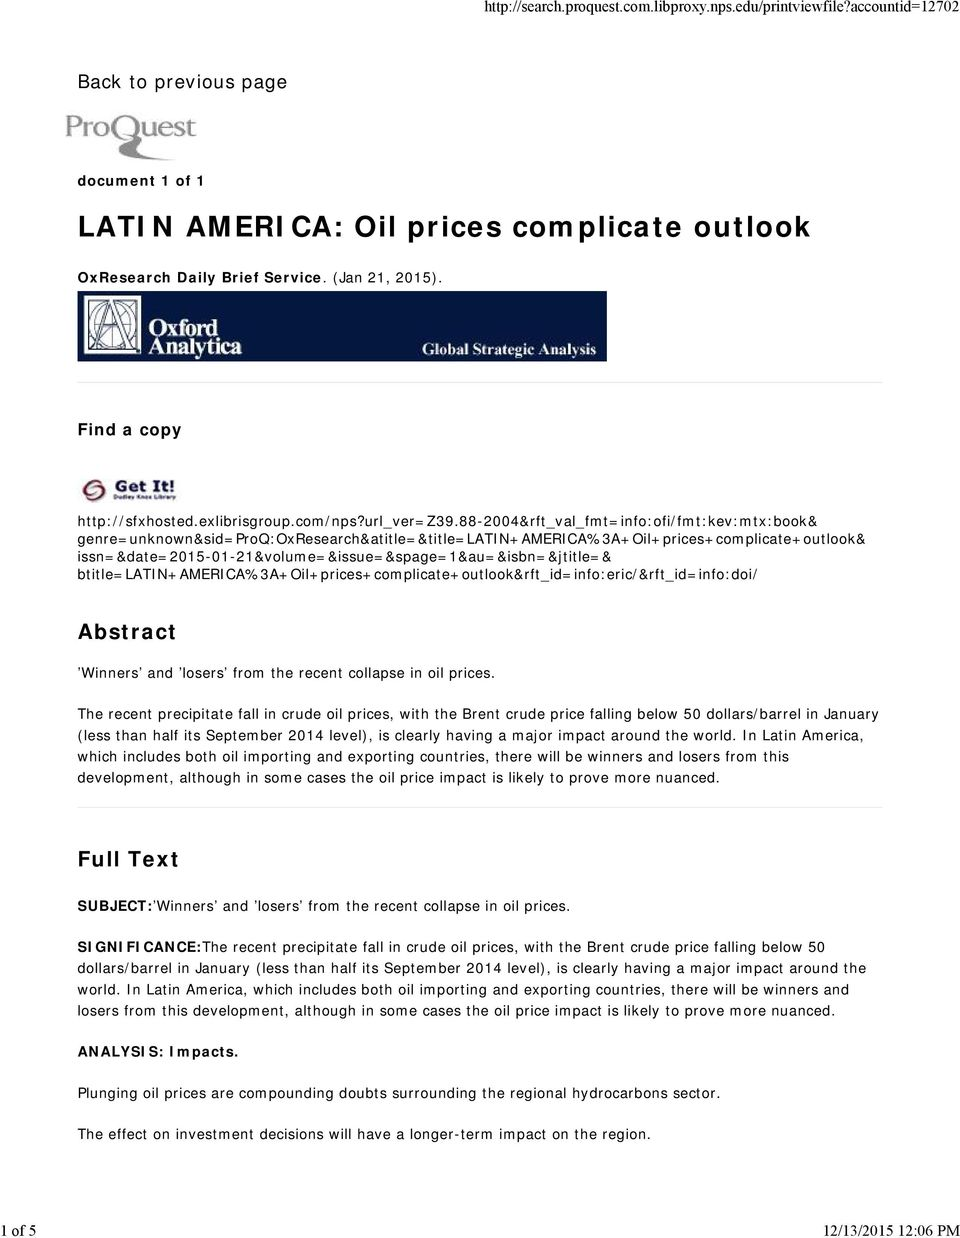 88-2004&rft_val_fmt=info:ofi/fmt:kev:mtx:book& genre=unknown&sid=proq:oxresearch&atitle=&title=latin+america%3a+oil+prices+complicate+outlook&